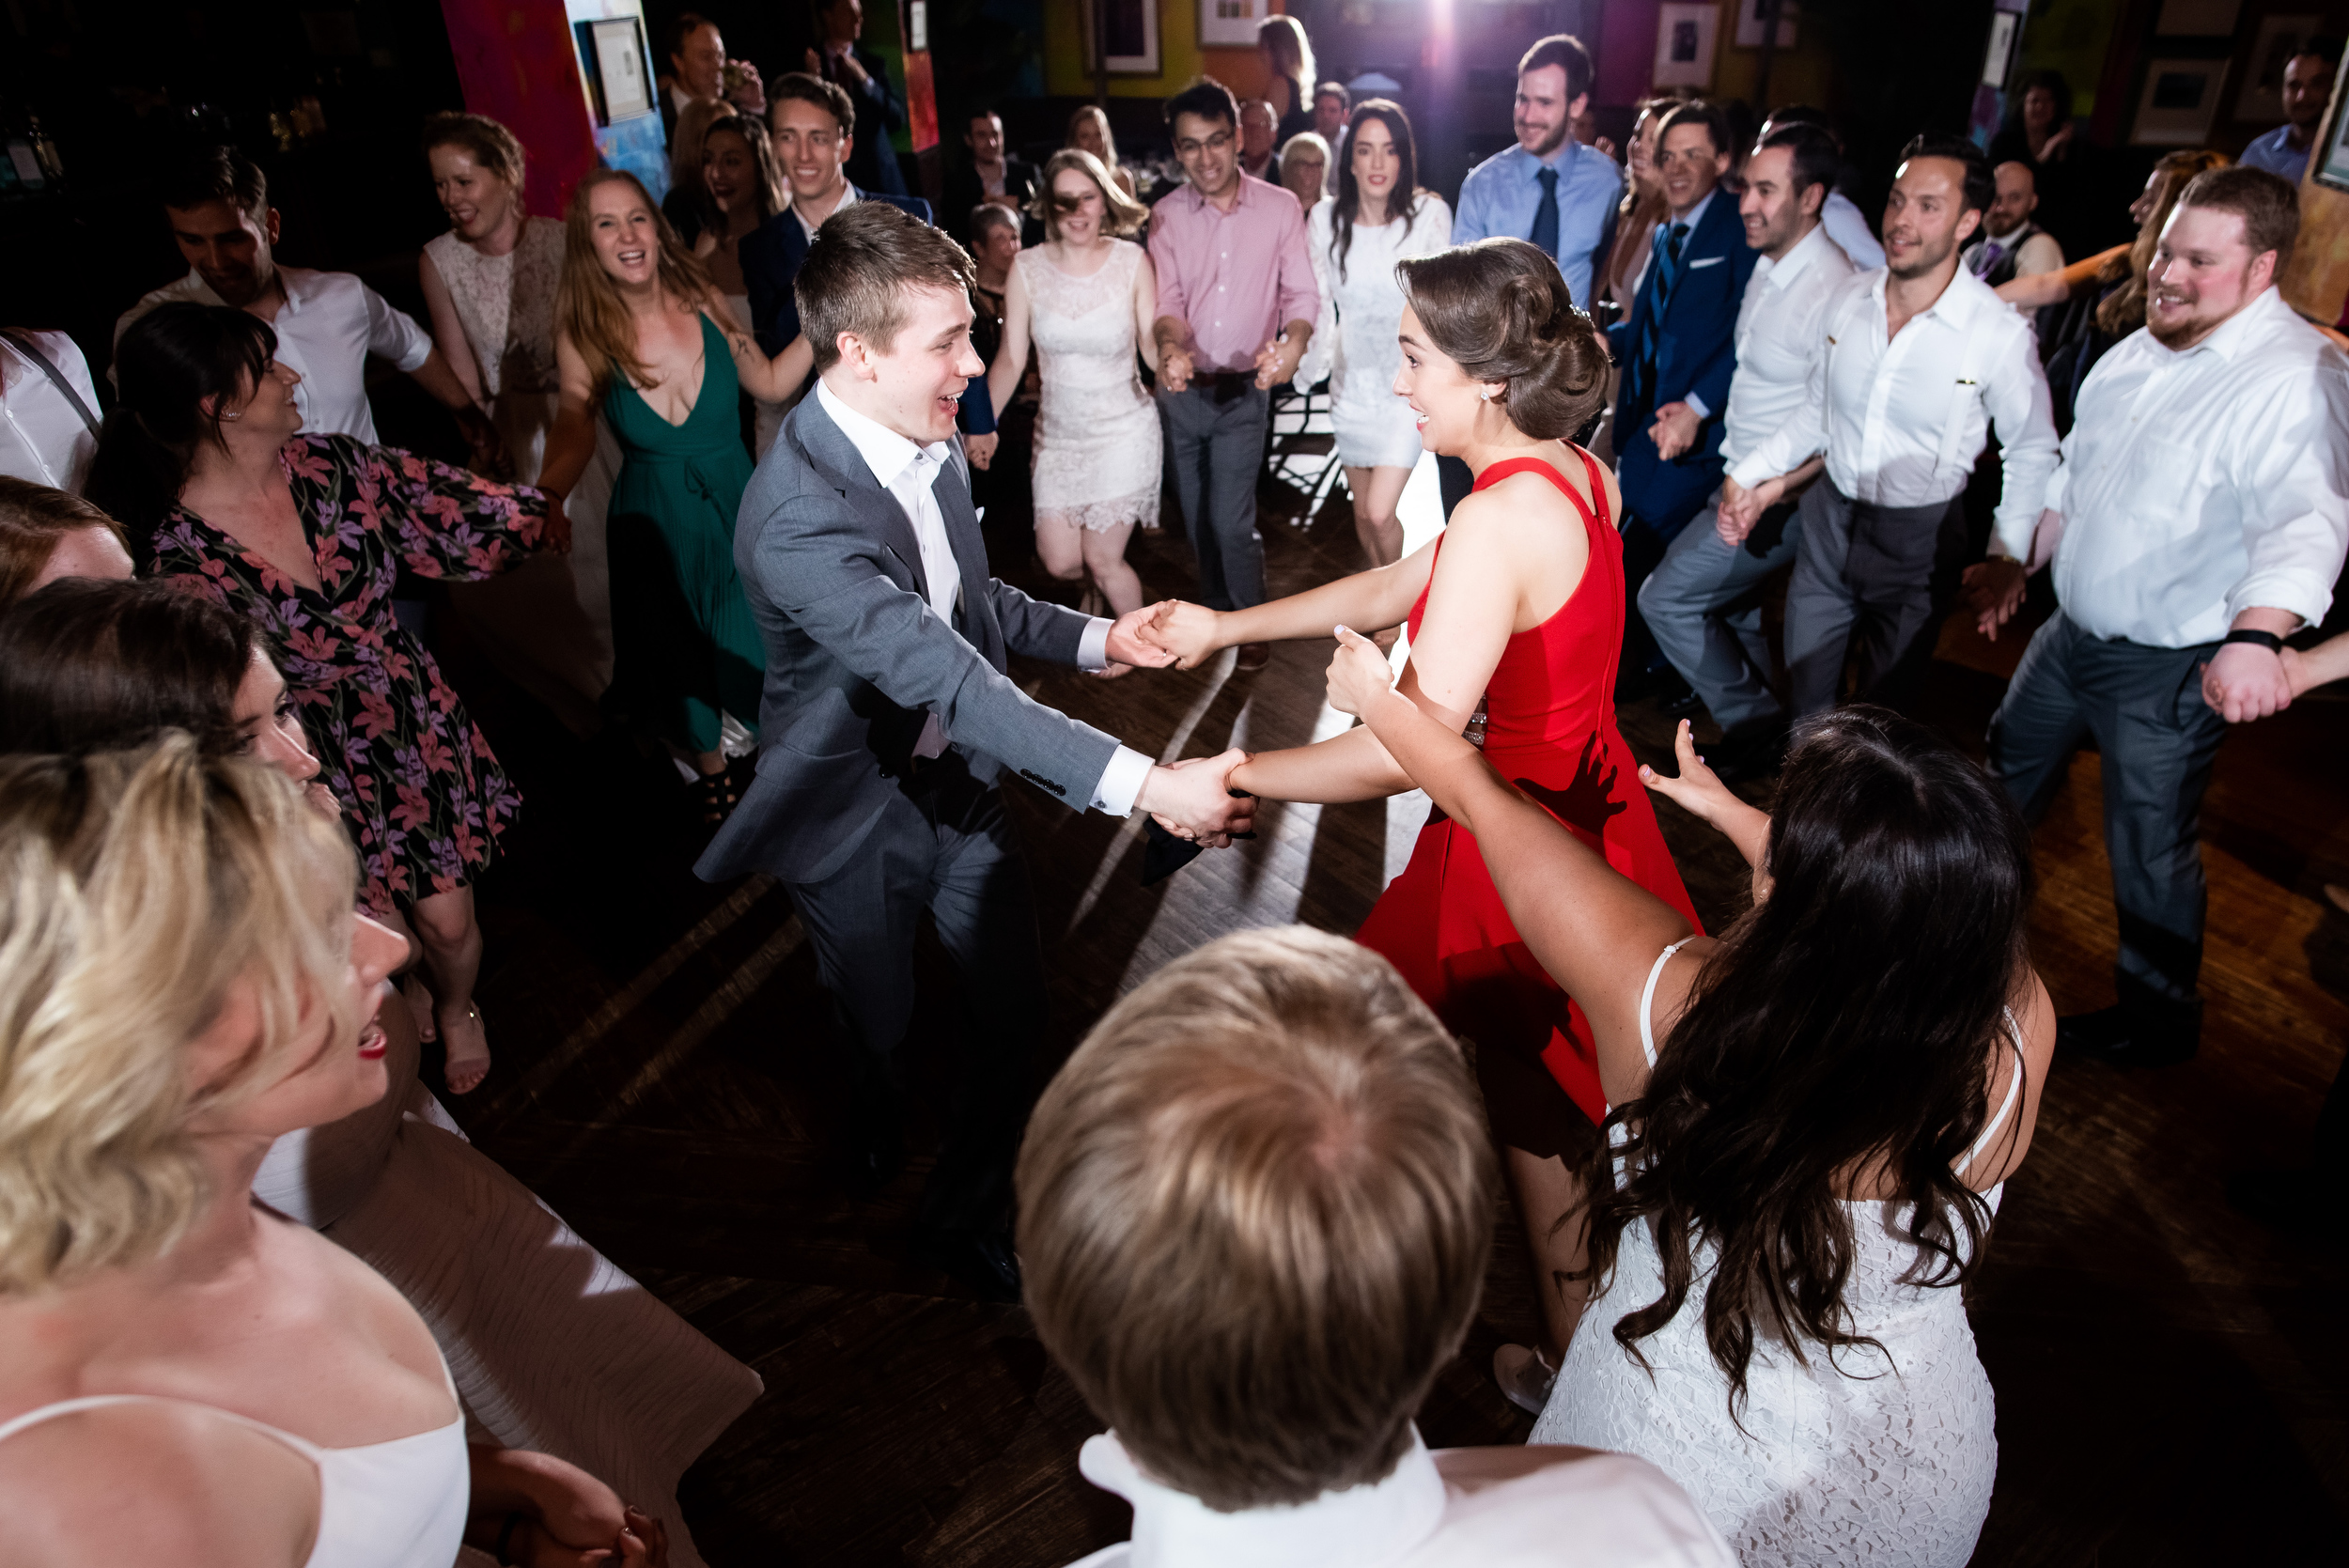 Wedding dance photos: Carnivale Chicago wedding captured by J Brown Photography